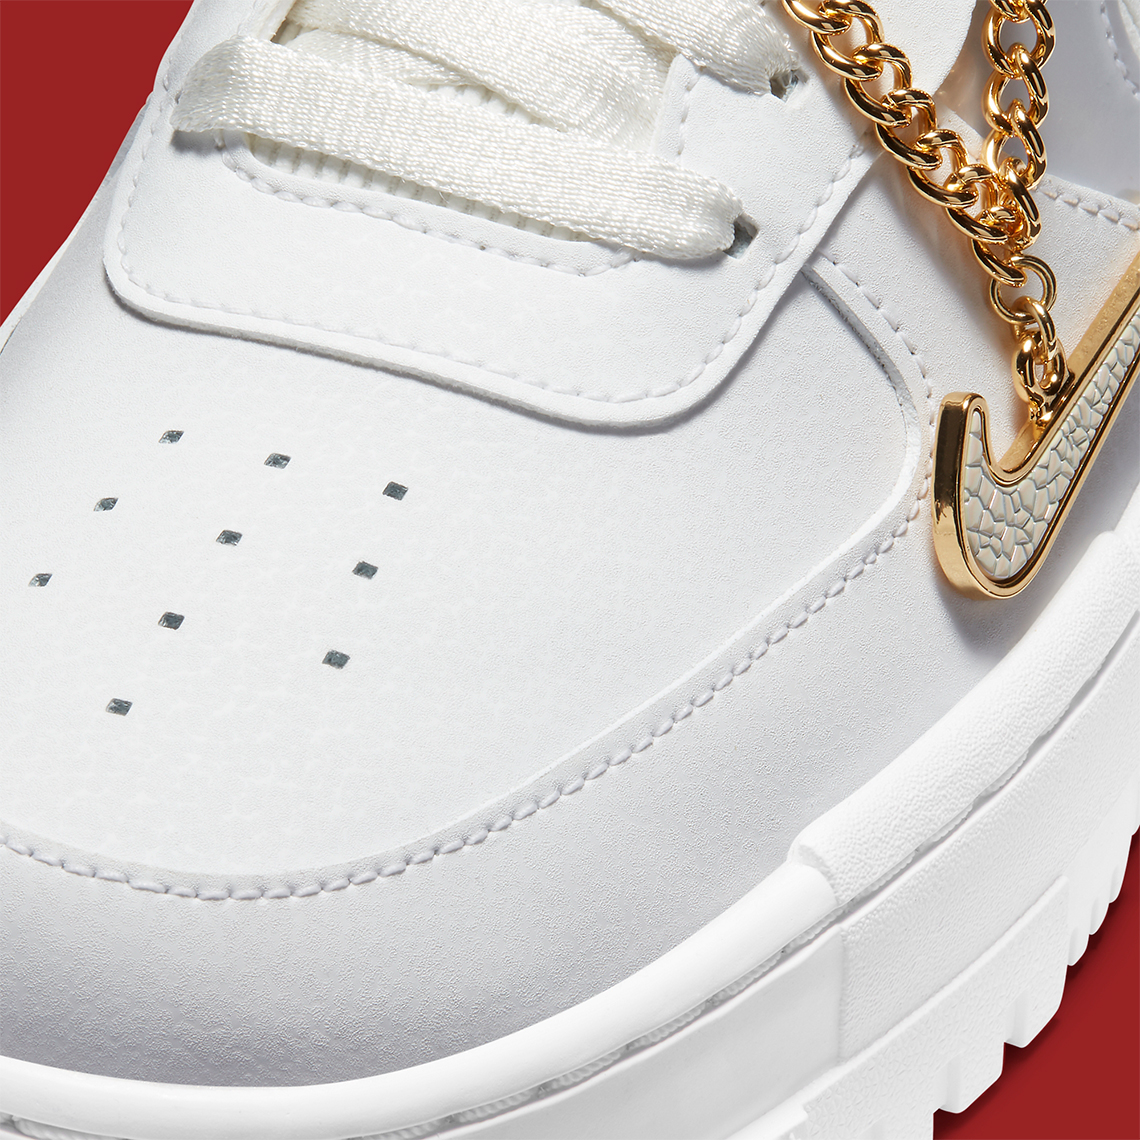 Nike Air Force 1 Pixel Grey Gold Chain DC1160-100 | Gov